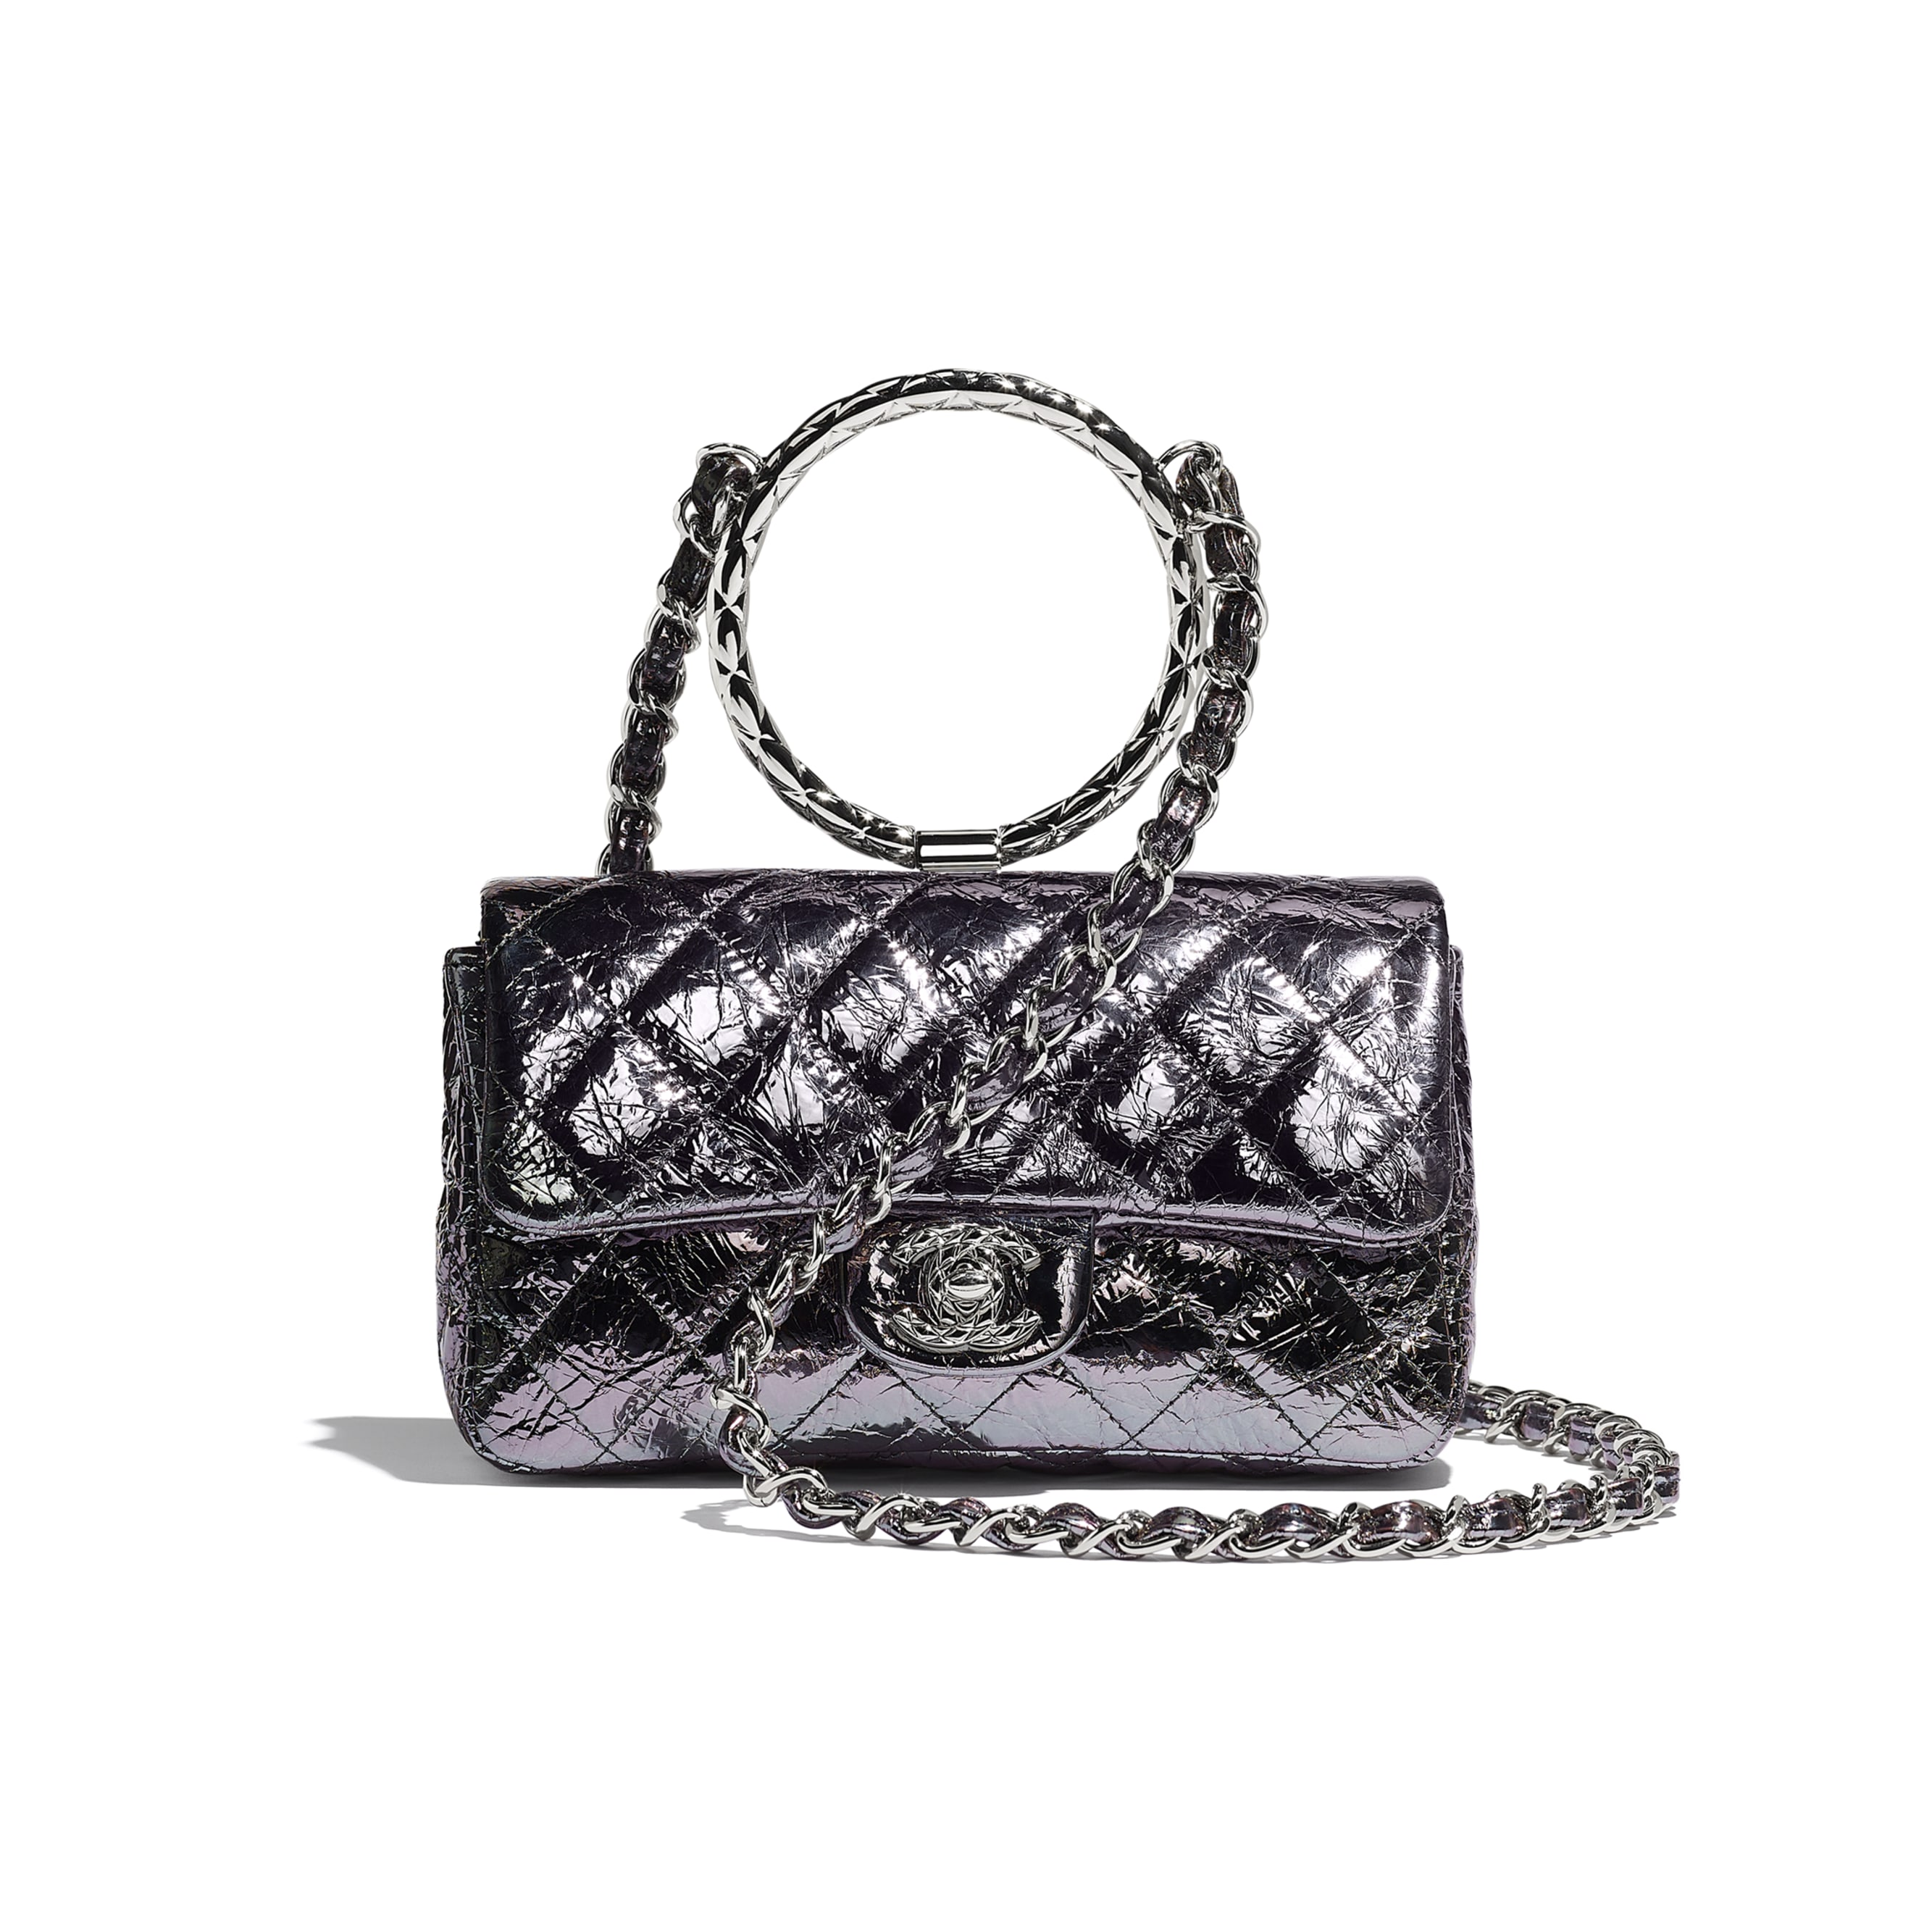 Flap Bag With Top Handle - Charcoal - Metallic Crackled Calfskin & Silver-Tone Metal - Default view - see standard sized version